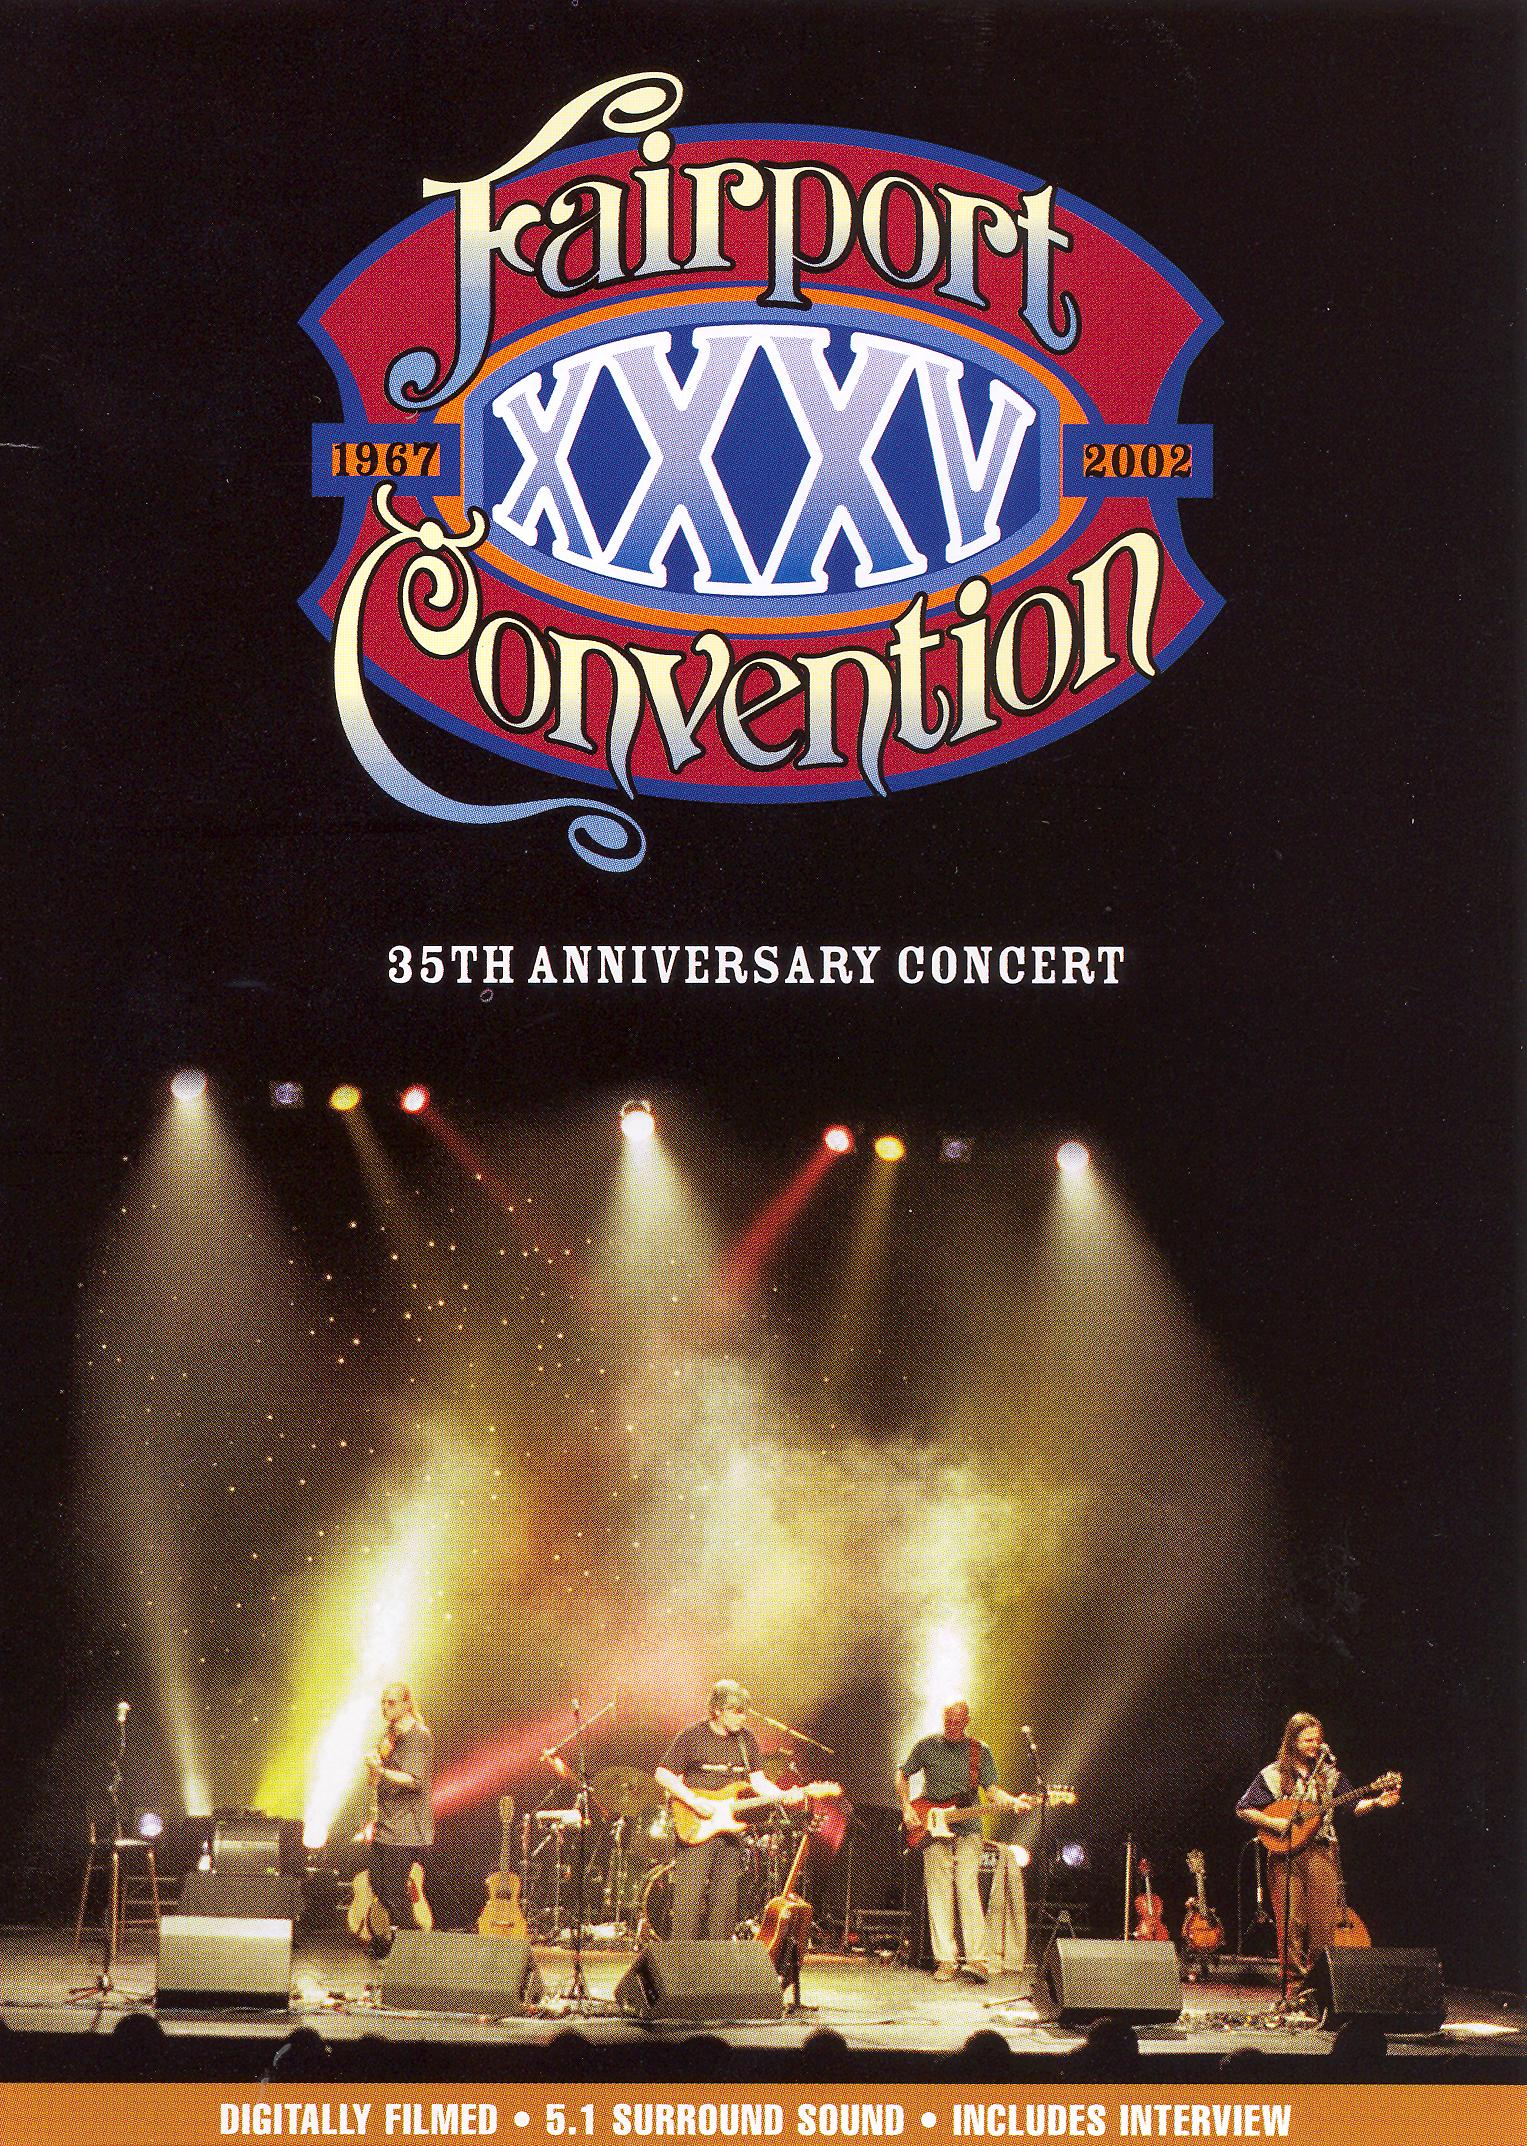 Fairport Convention: The 35th Anniversary Concert